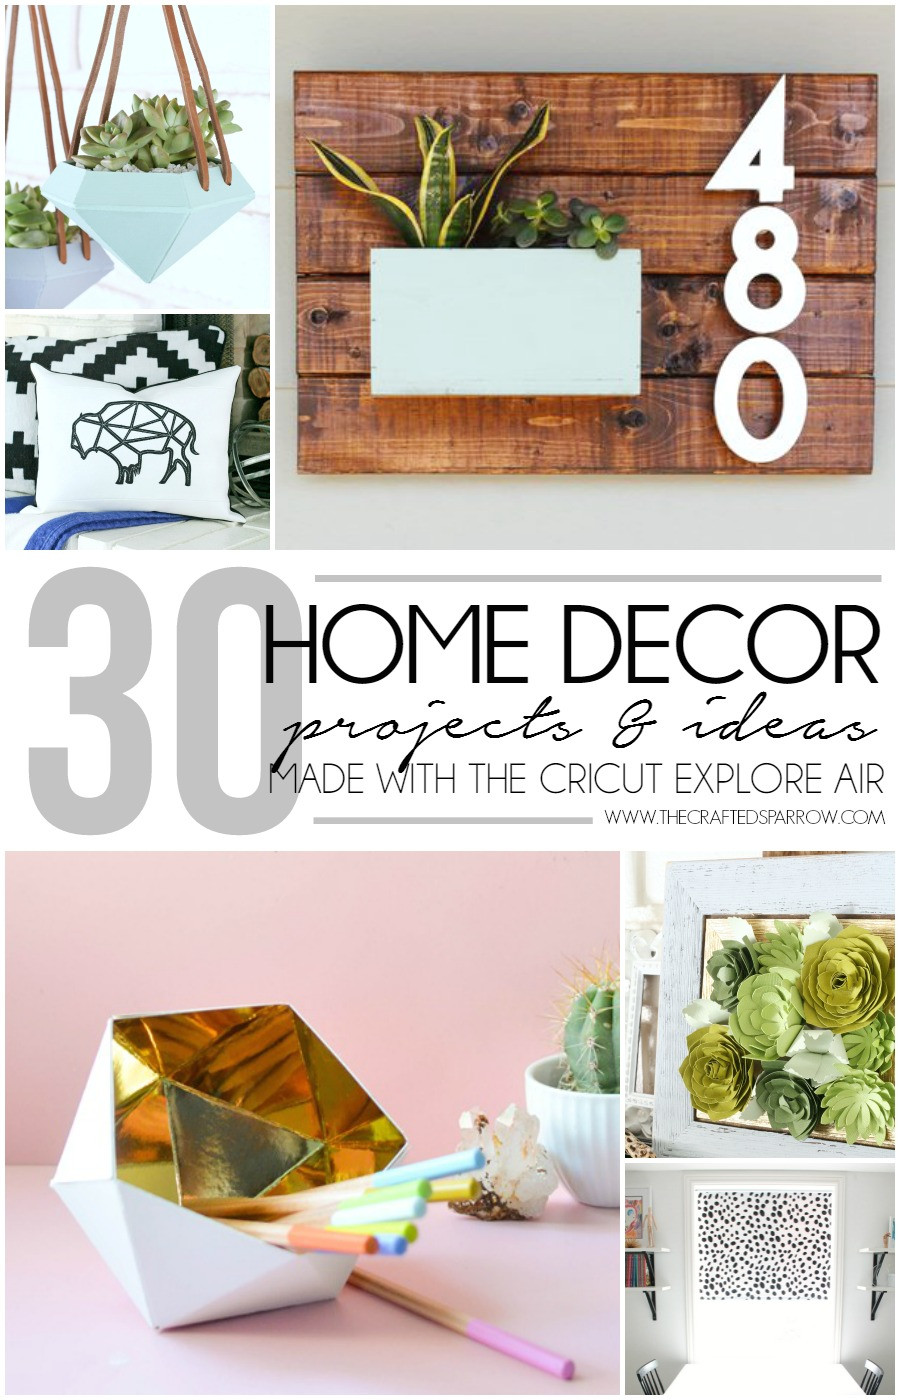 Best ideas about Cricut Craft Ideas . Save or Pin 30 Home Decor Projects Made with the Cricut Explore Air Now.